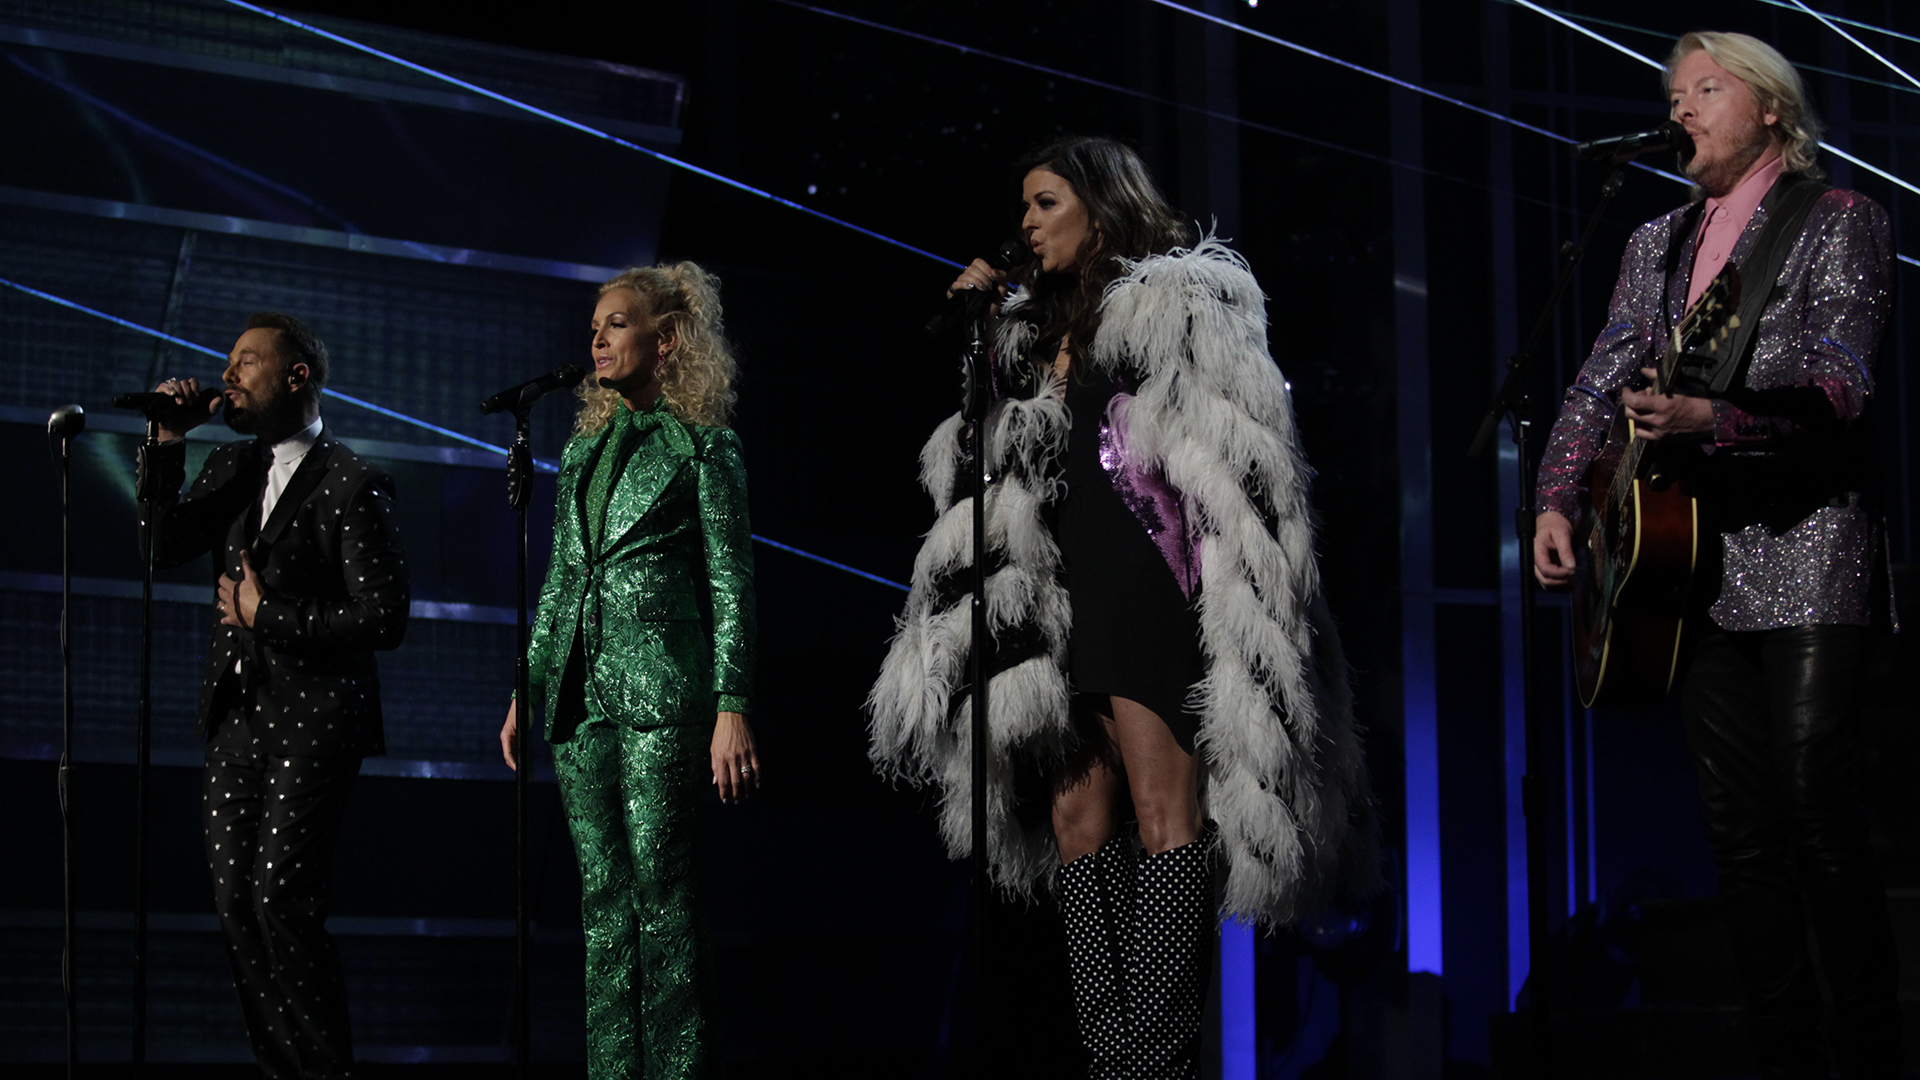 Little Big Town performs a cover of Elton John's famous tune